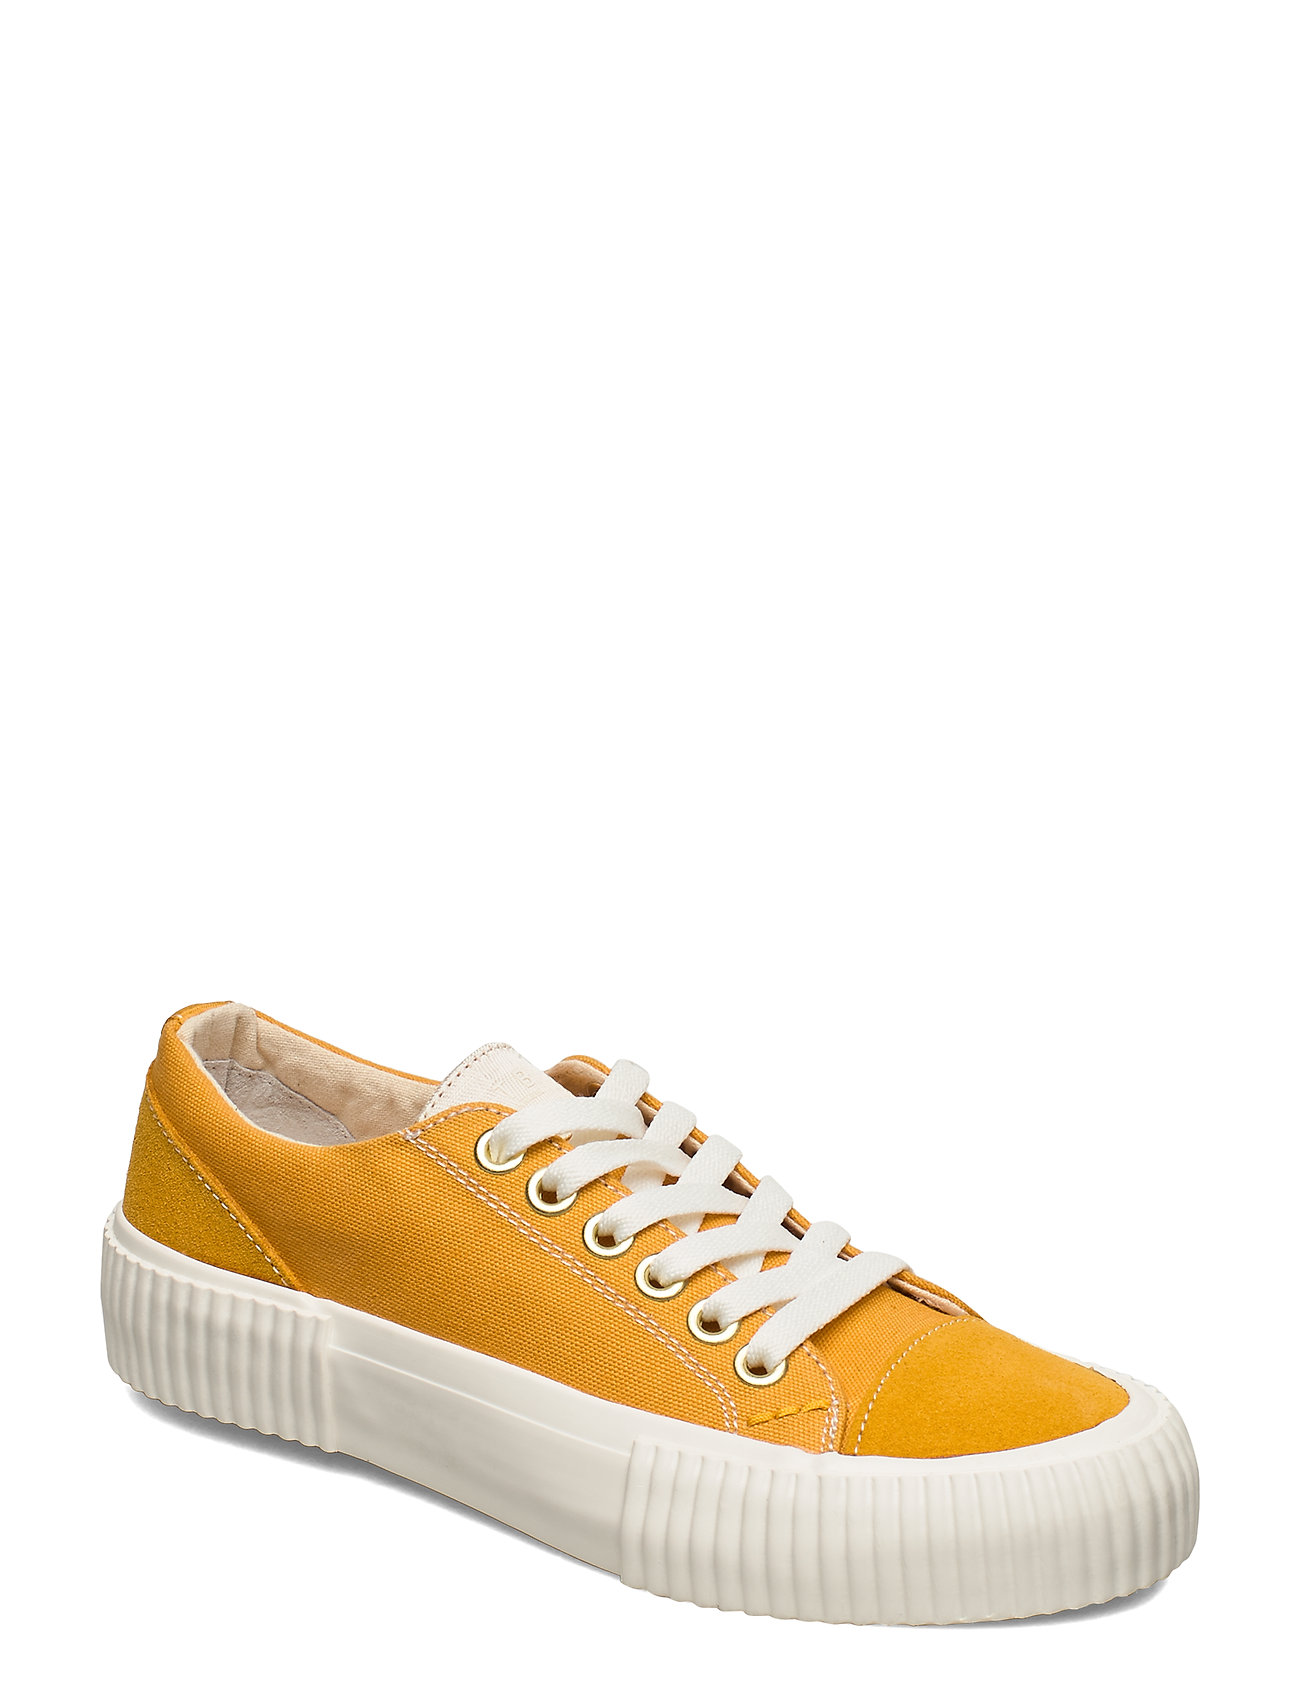 Image of Stb-Andrea T Low-top Sneakers Gul Shoe The Bear (3359209595)